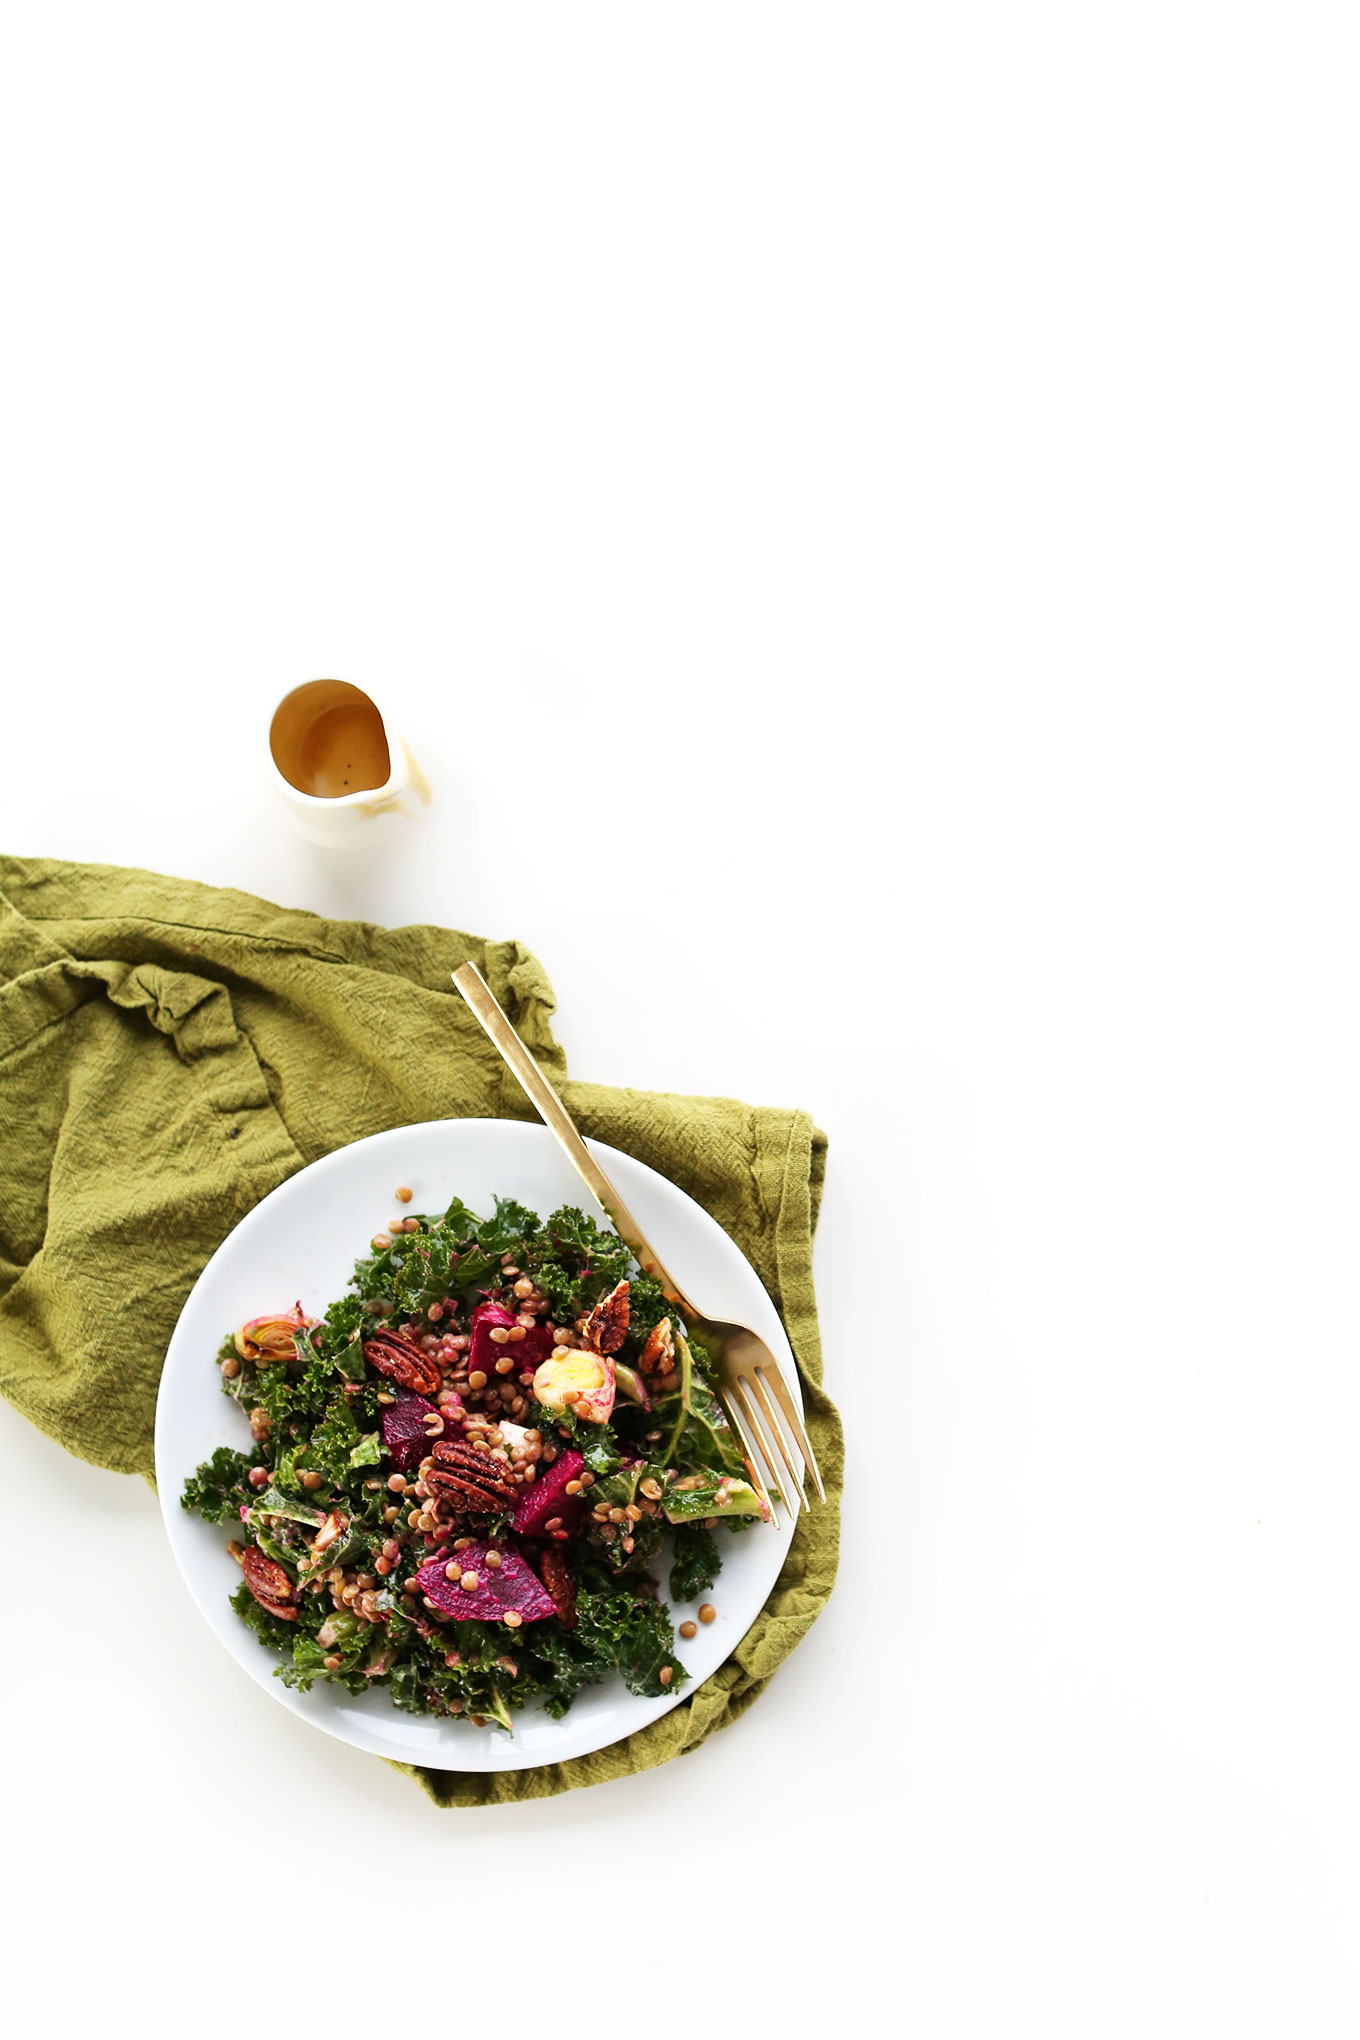 Healthy light meal of our refreshing Abundance Salad with Kale, Lentils, Leeks, and Beets